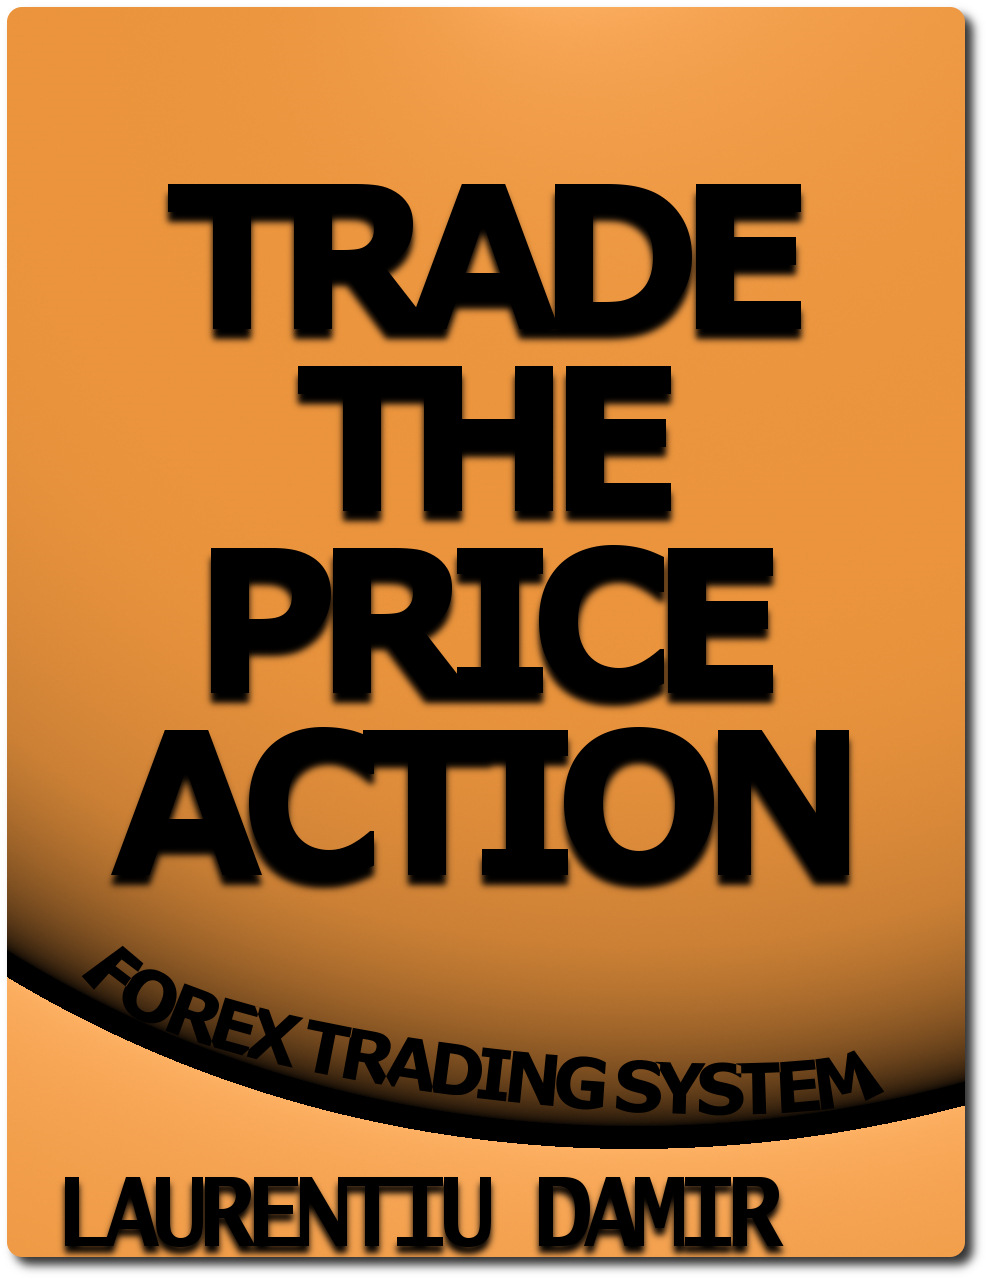 Trade The Price Action By: Laurentiu Damir